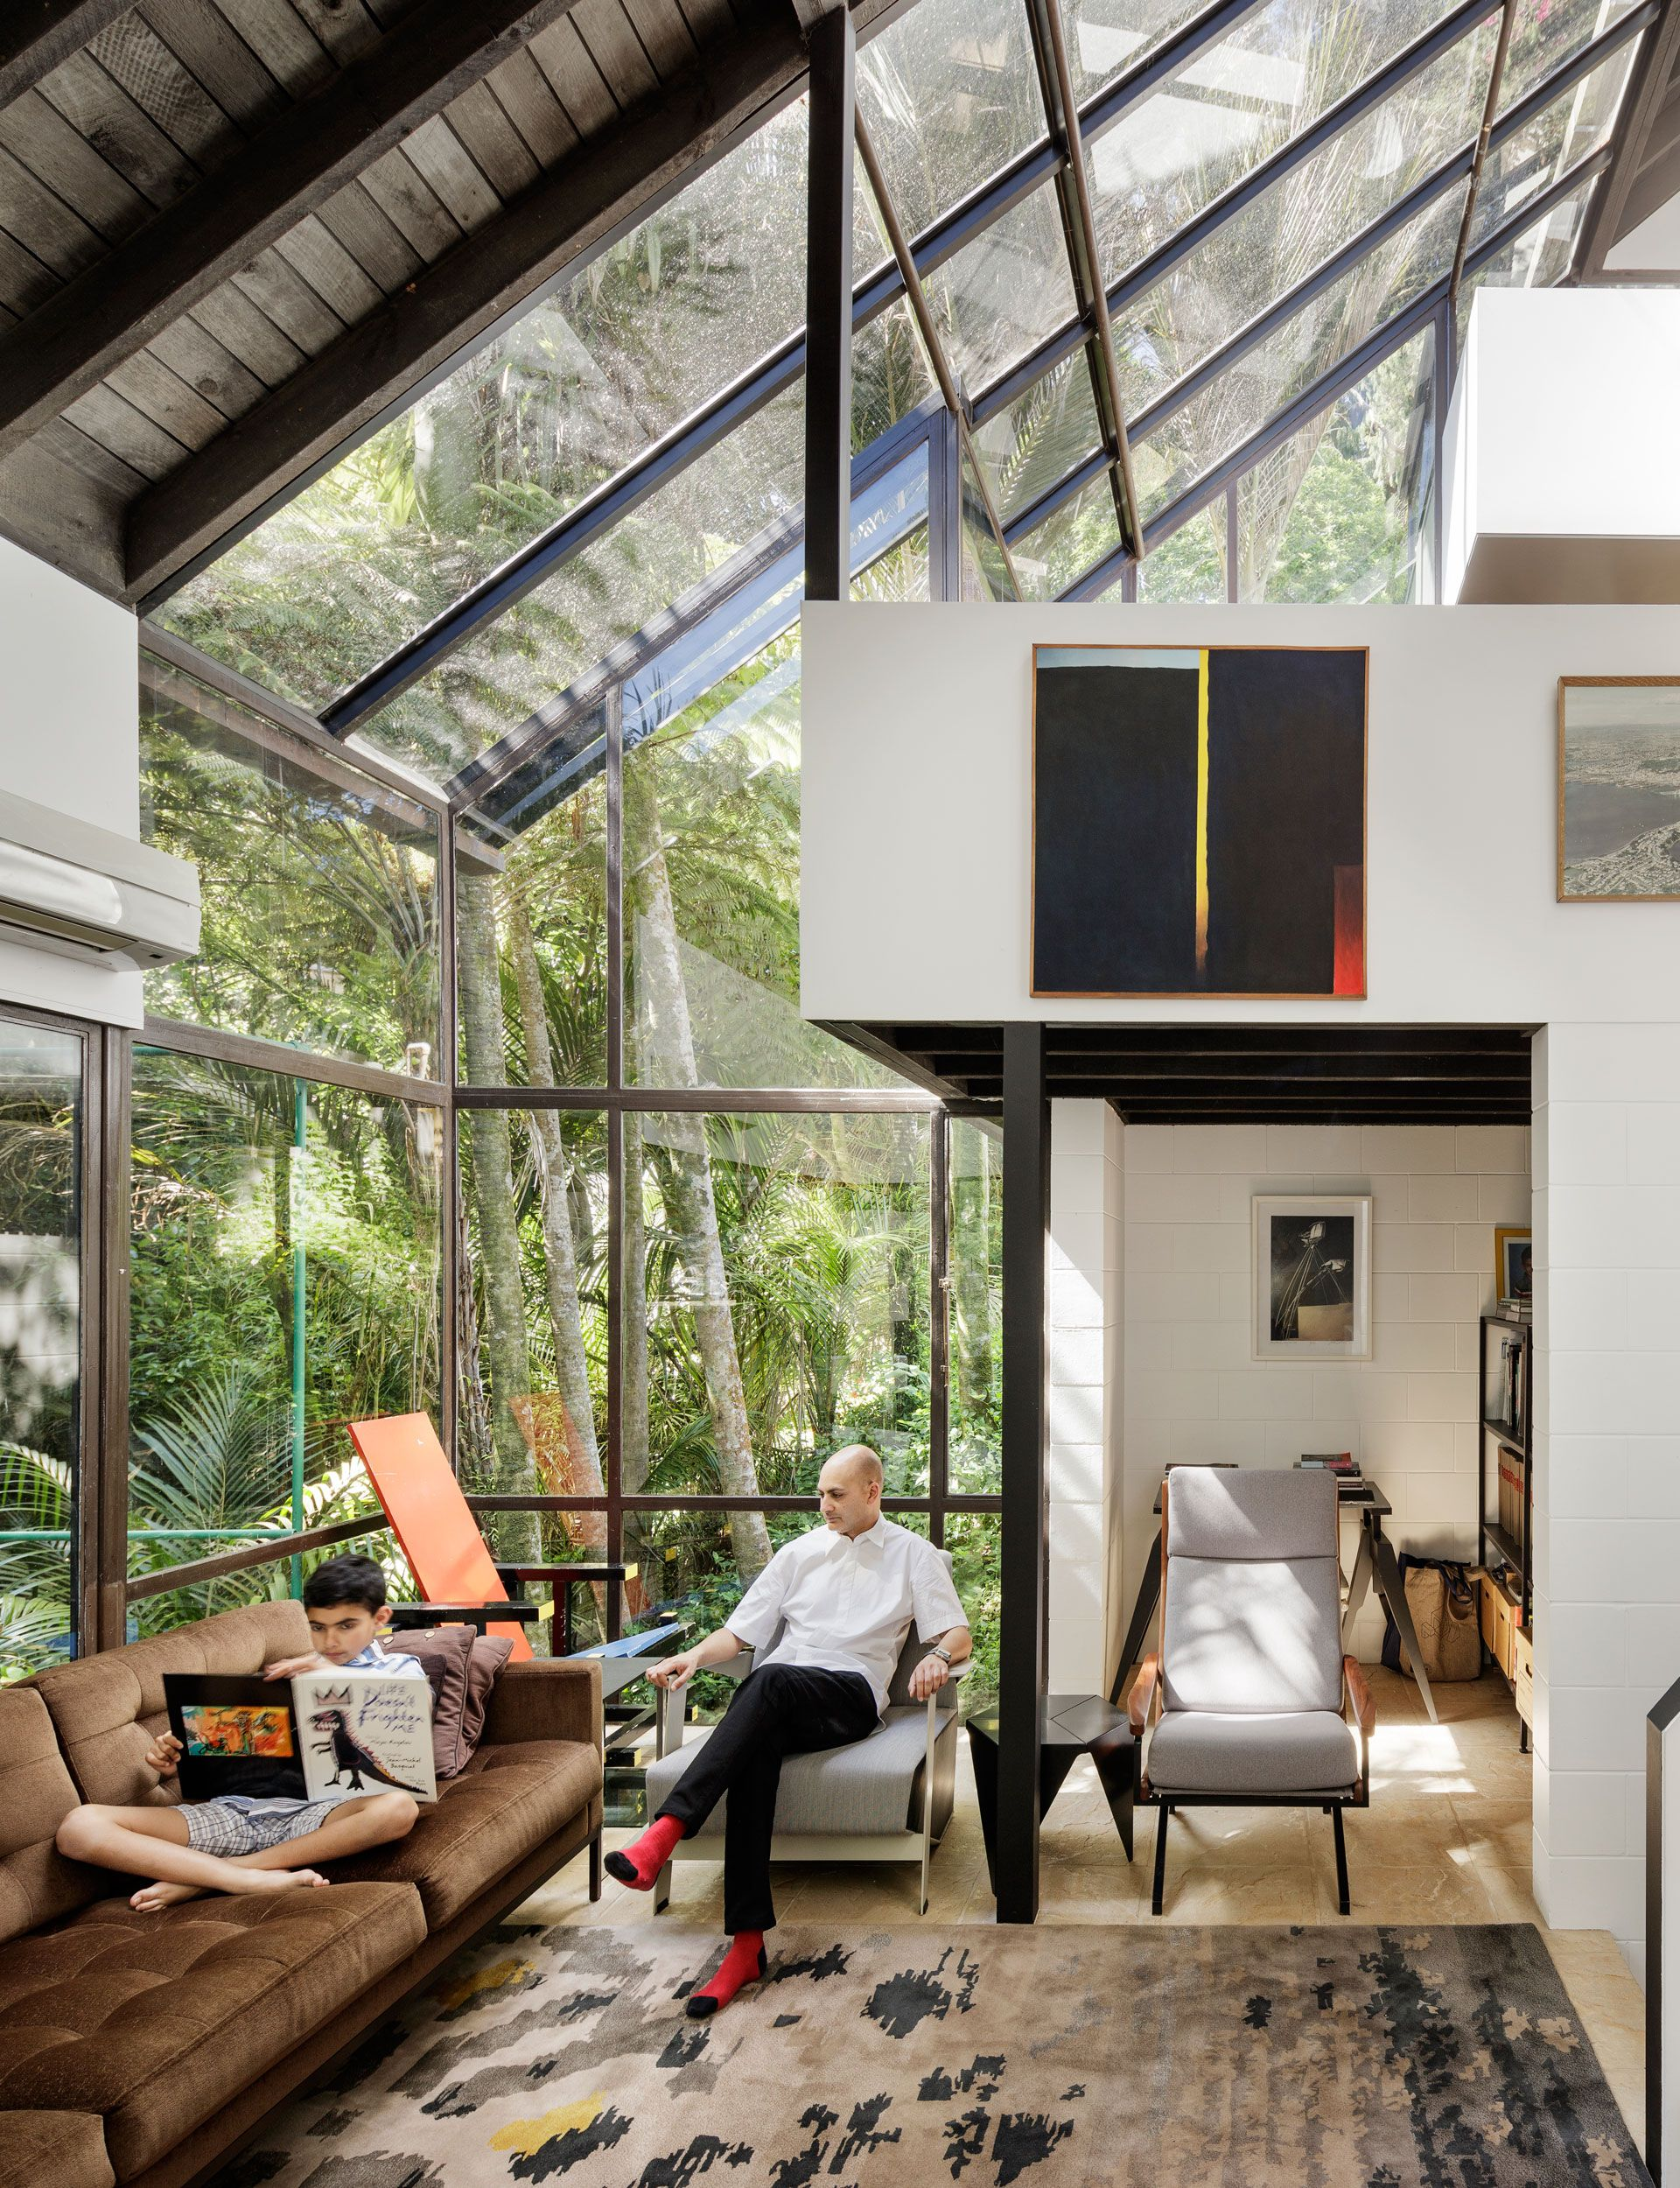 An incredible treetop home by architect claude megson is gently